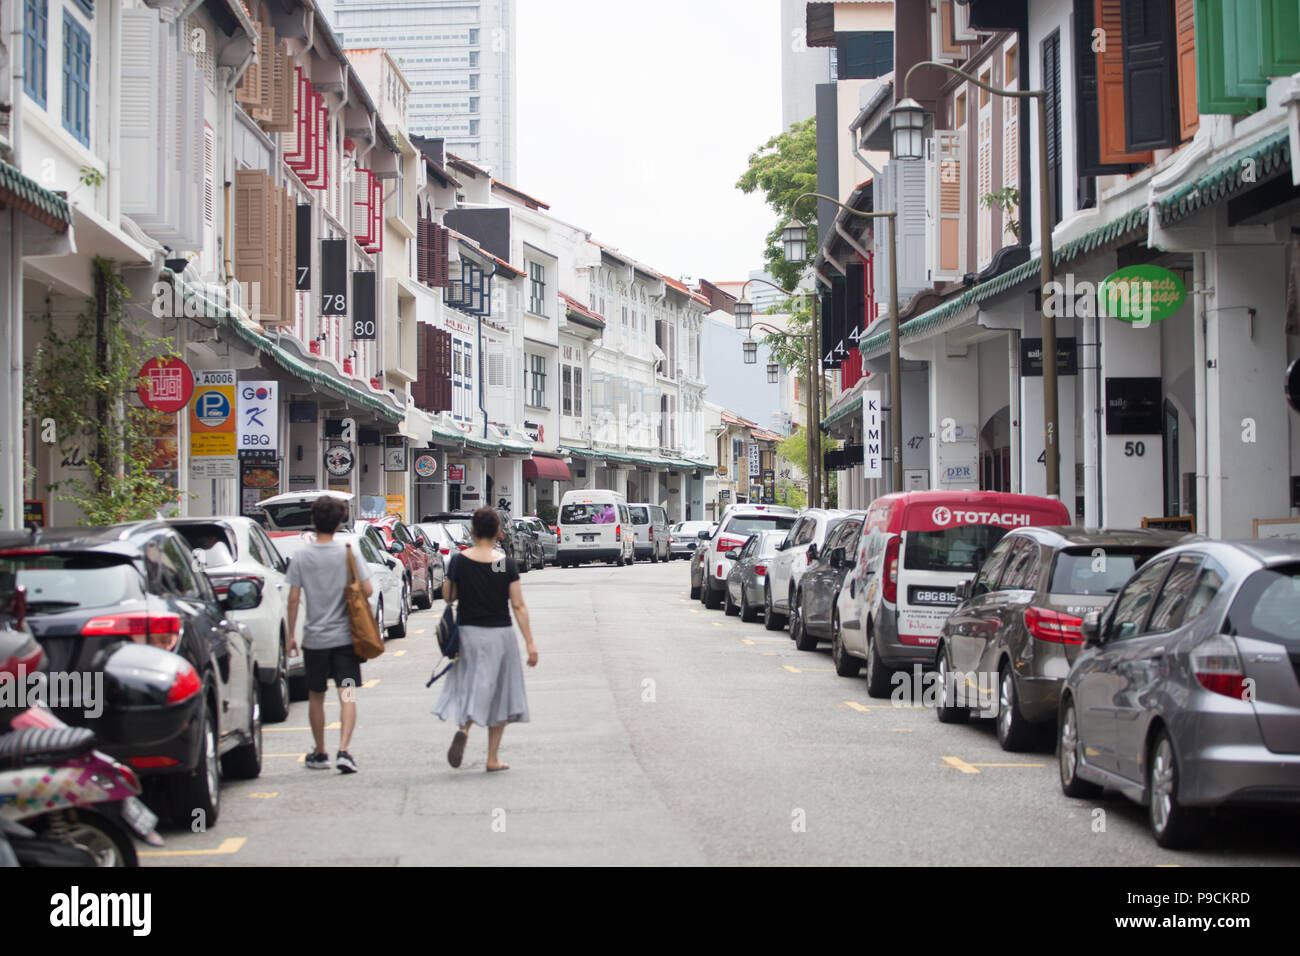 Two tourists walking on the road surrounded by shophouses, Singapore. - Stock Image